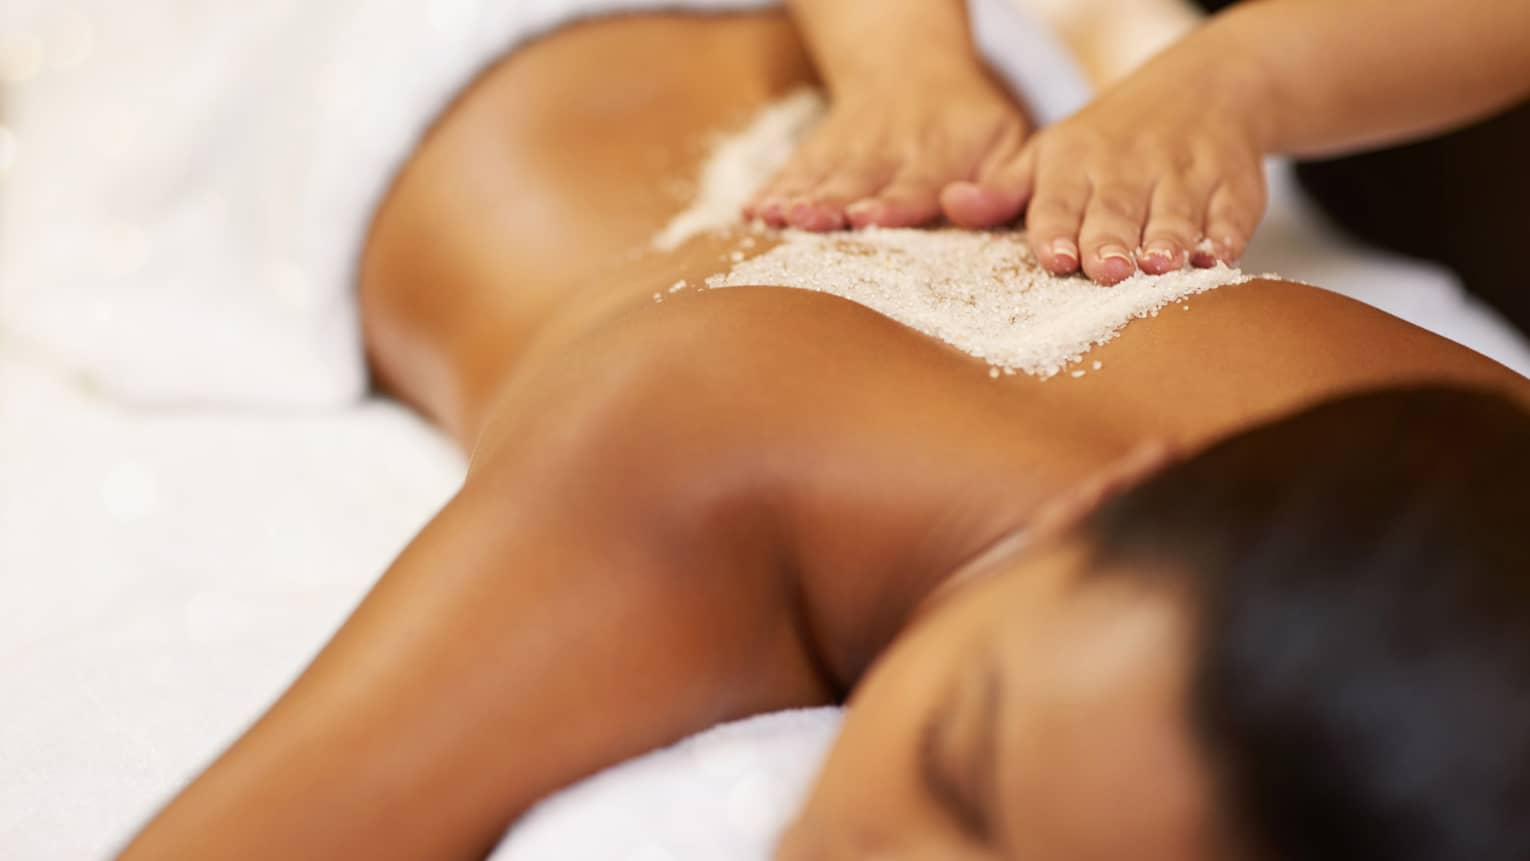 Close-up of hands massaging salt on woman's bare back as she lays with eyes closed on massage table